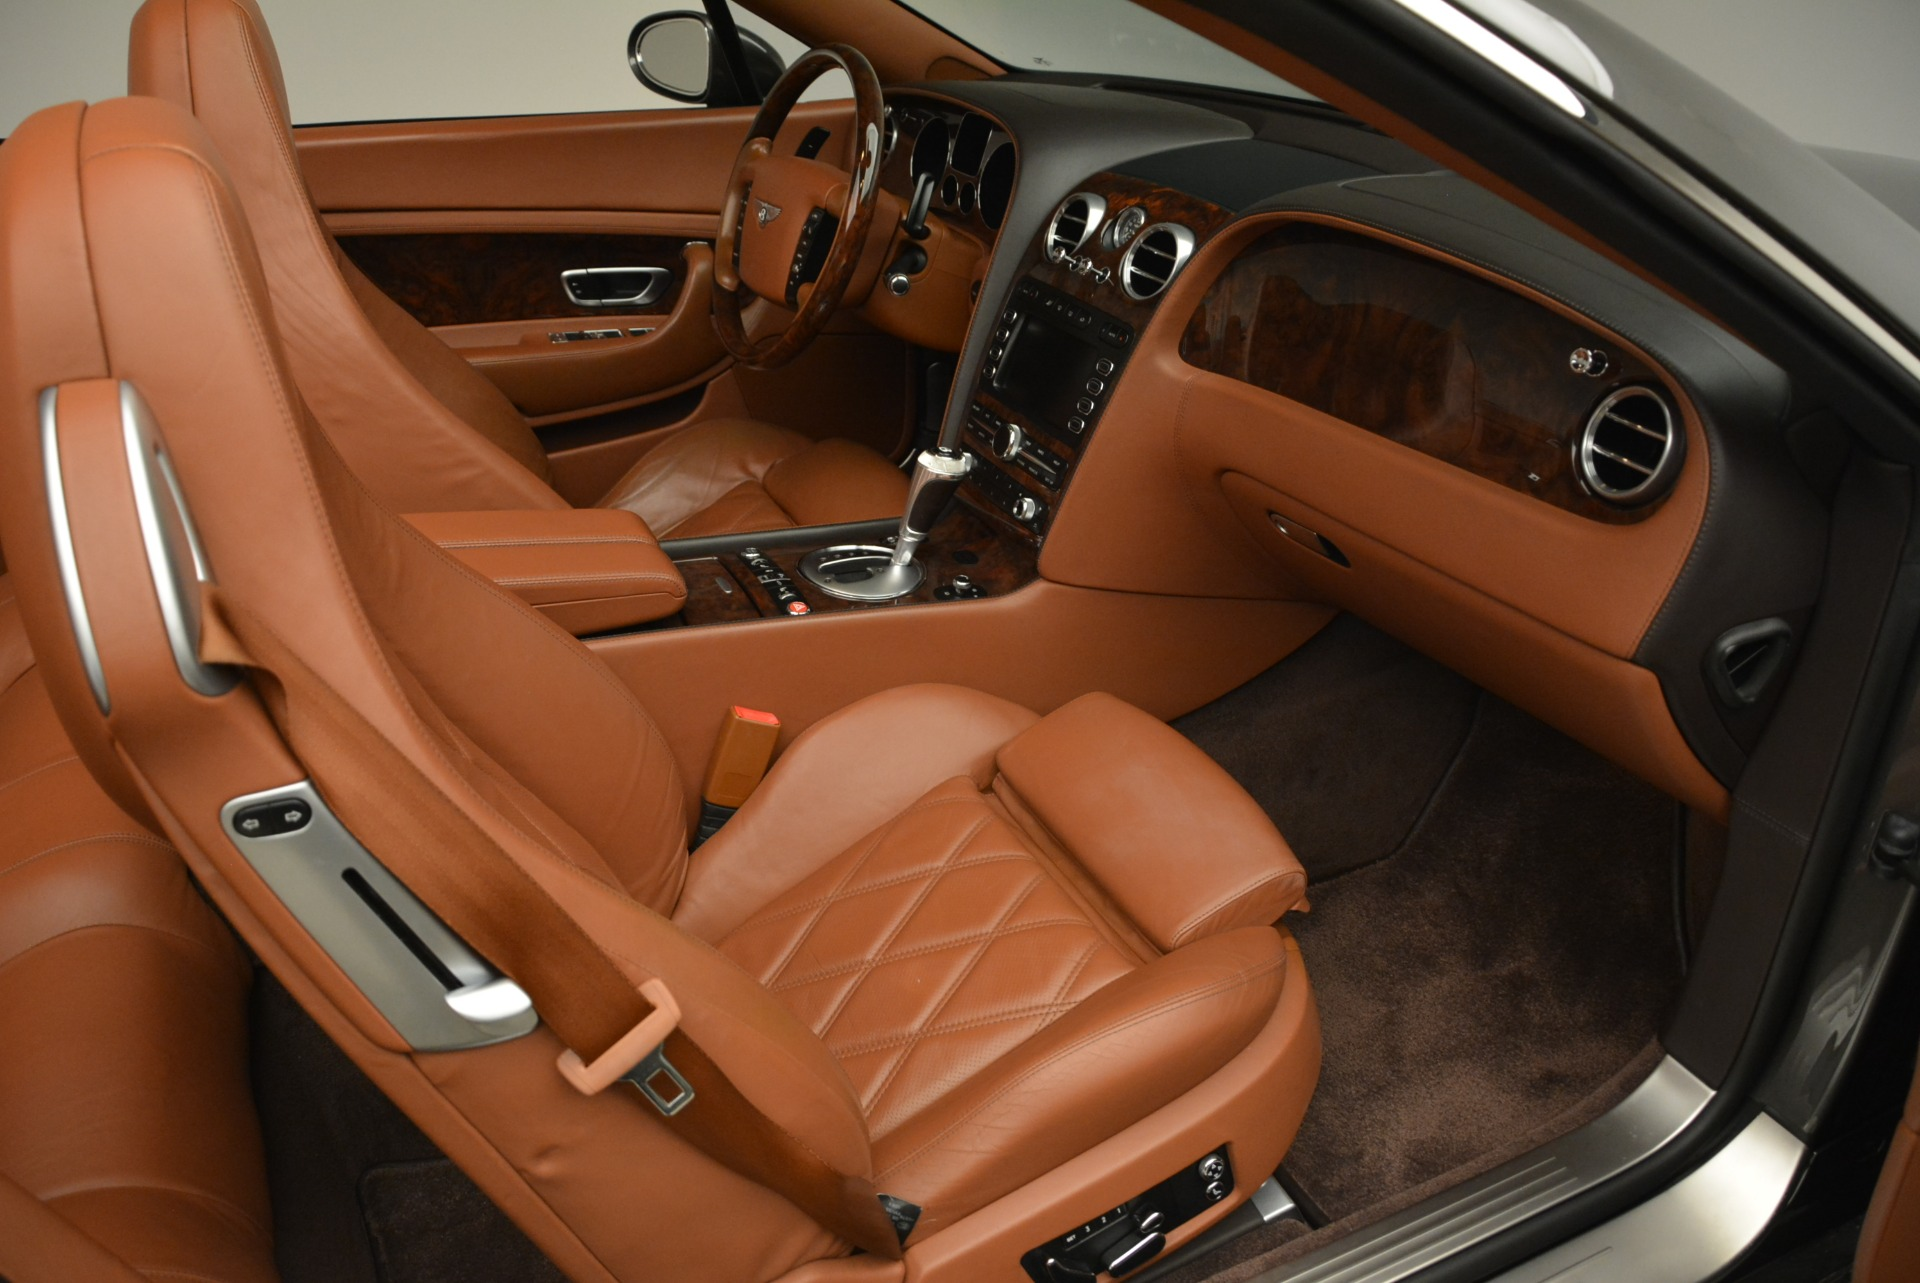 Used 2008 Bentley Continental GT W12 For Sale In Westport, CT 2190_p39